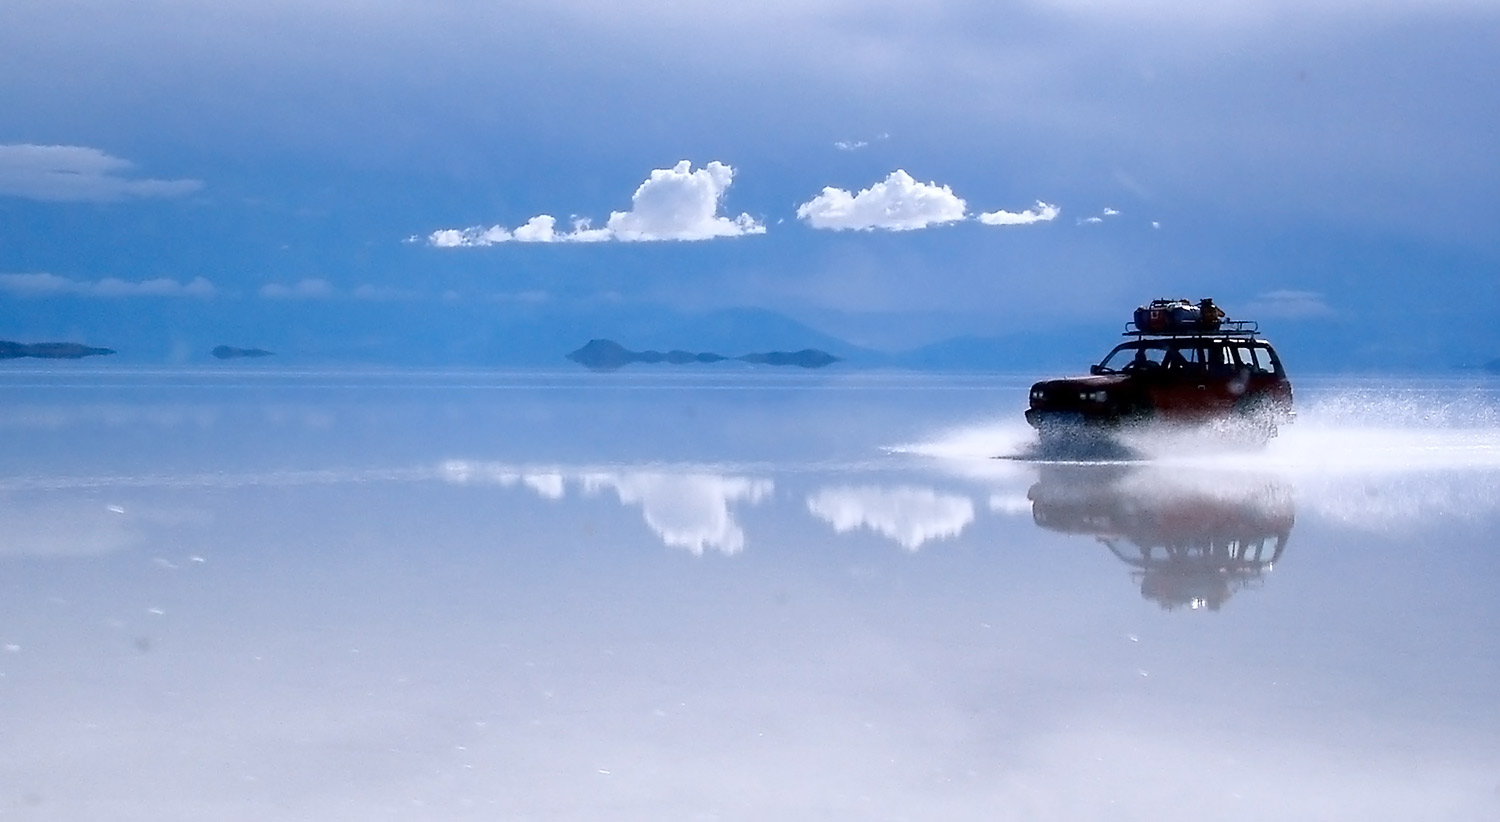 salar_de_uyuni_hd_background